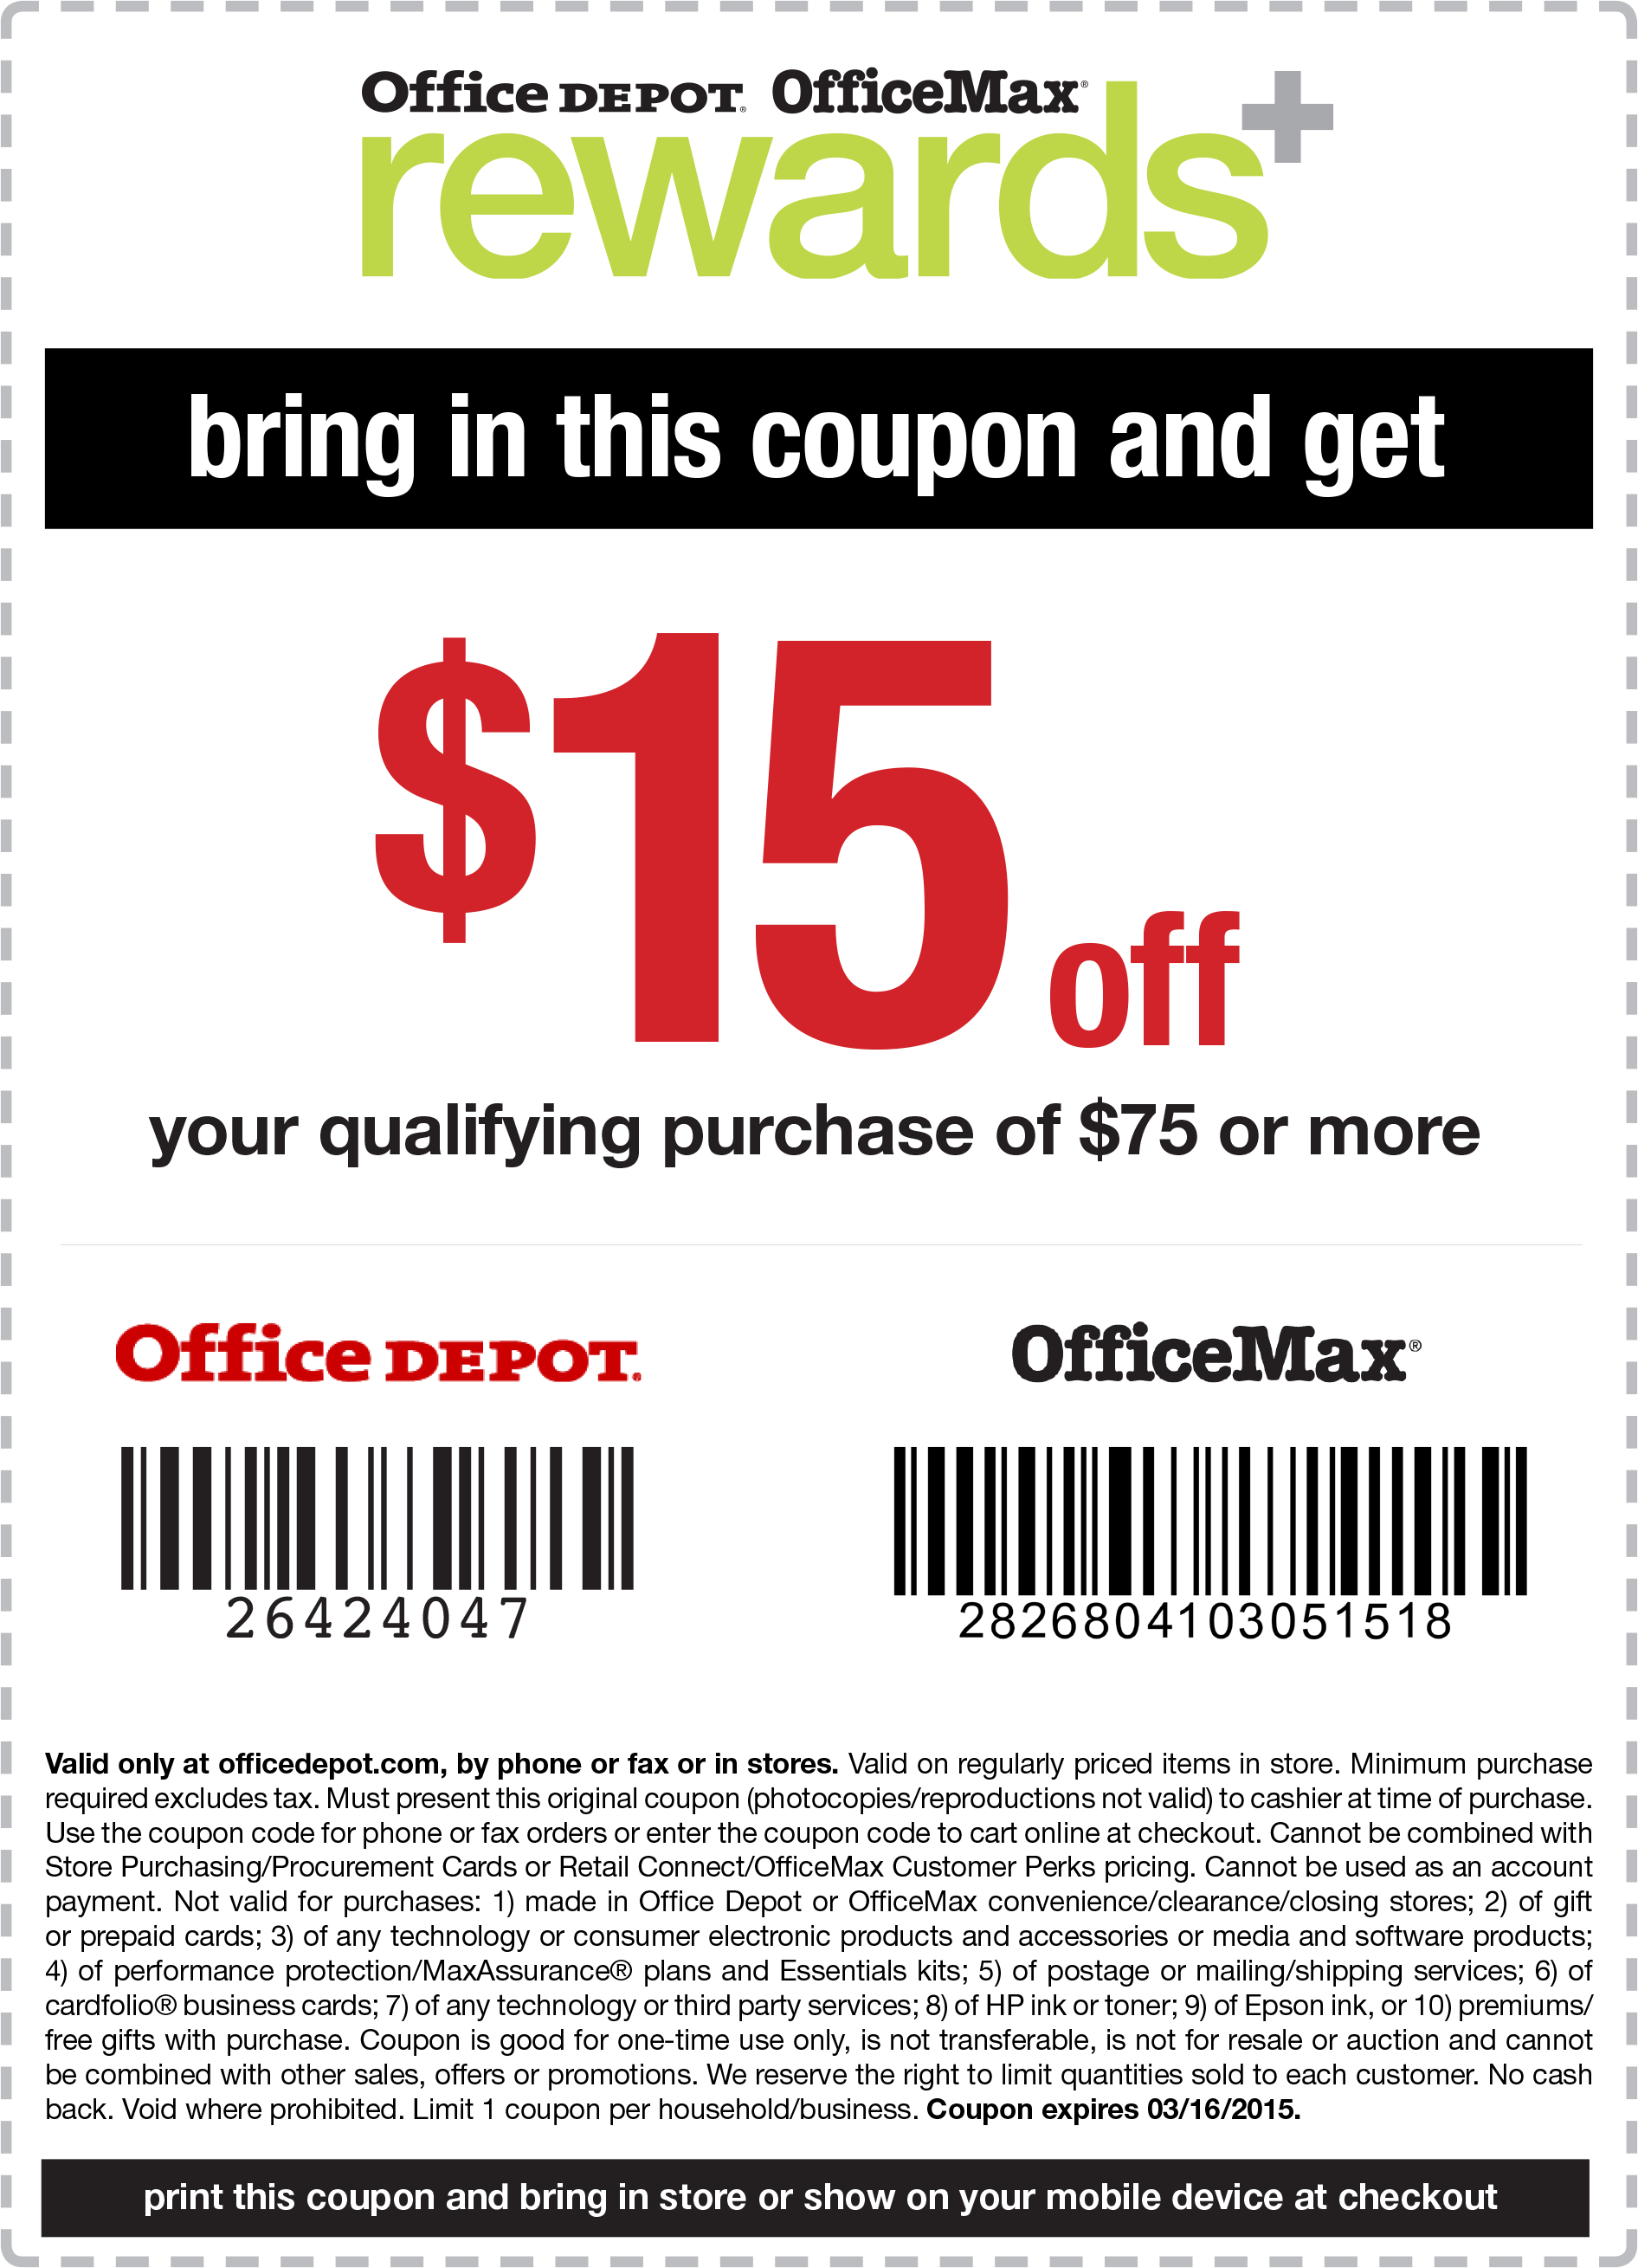 OfficeMax Coupon June 2019 $15 off $75 at Office Depot & OfficeMax, or online via promo code 26424047